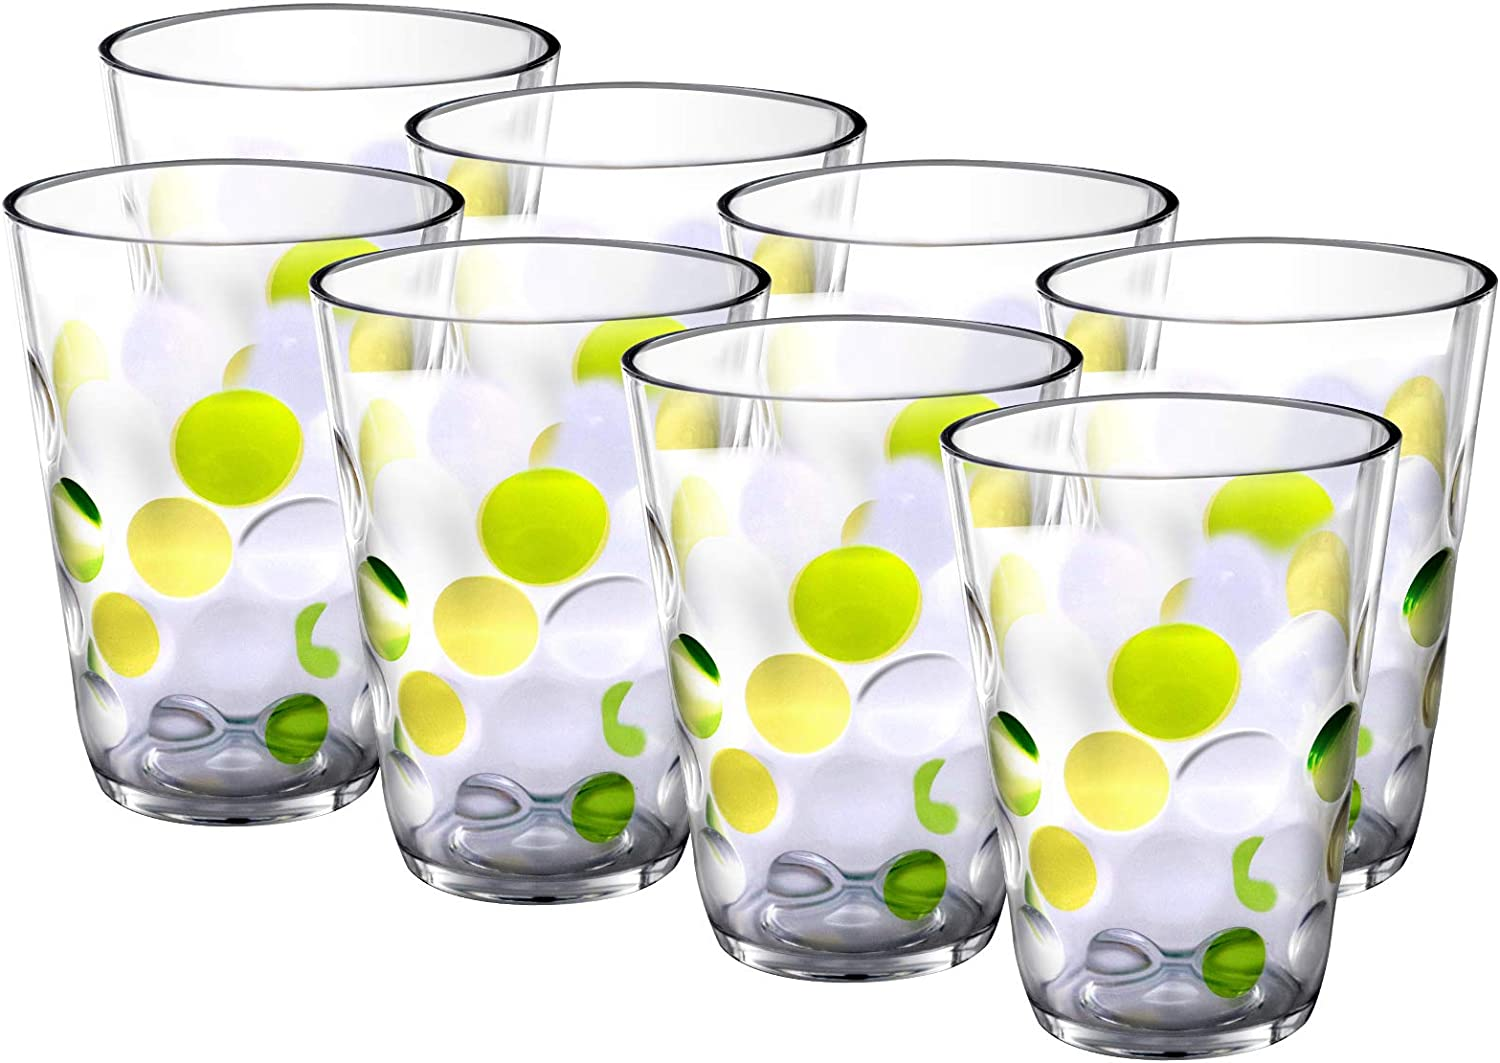 Plastic Water Tumblers, 12-ounce Acrylic Break-Resistant Drinking Glasses Dishwasher Safe Bathroom Cups Stackable Juice Glasses| Clear Set of 8 (Green)